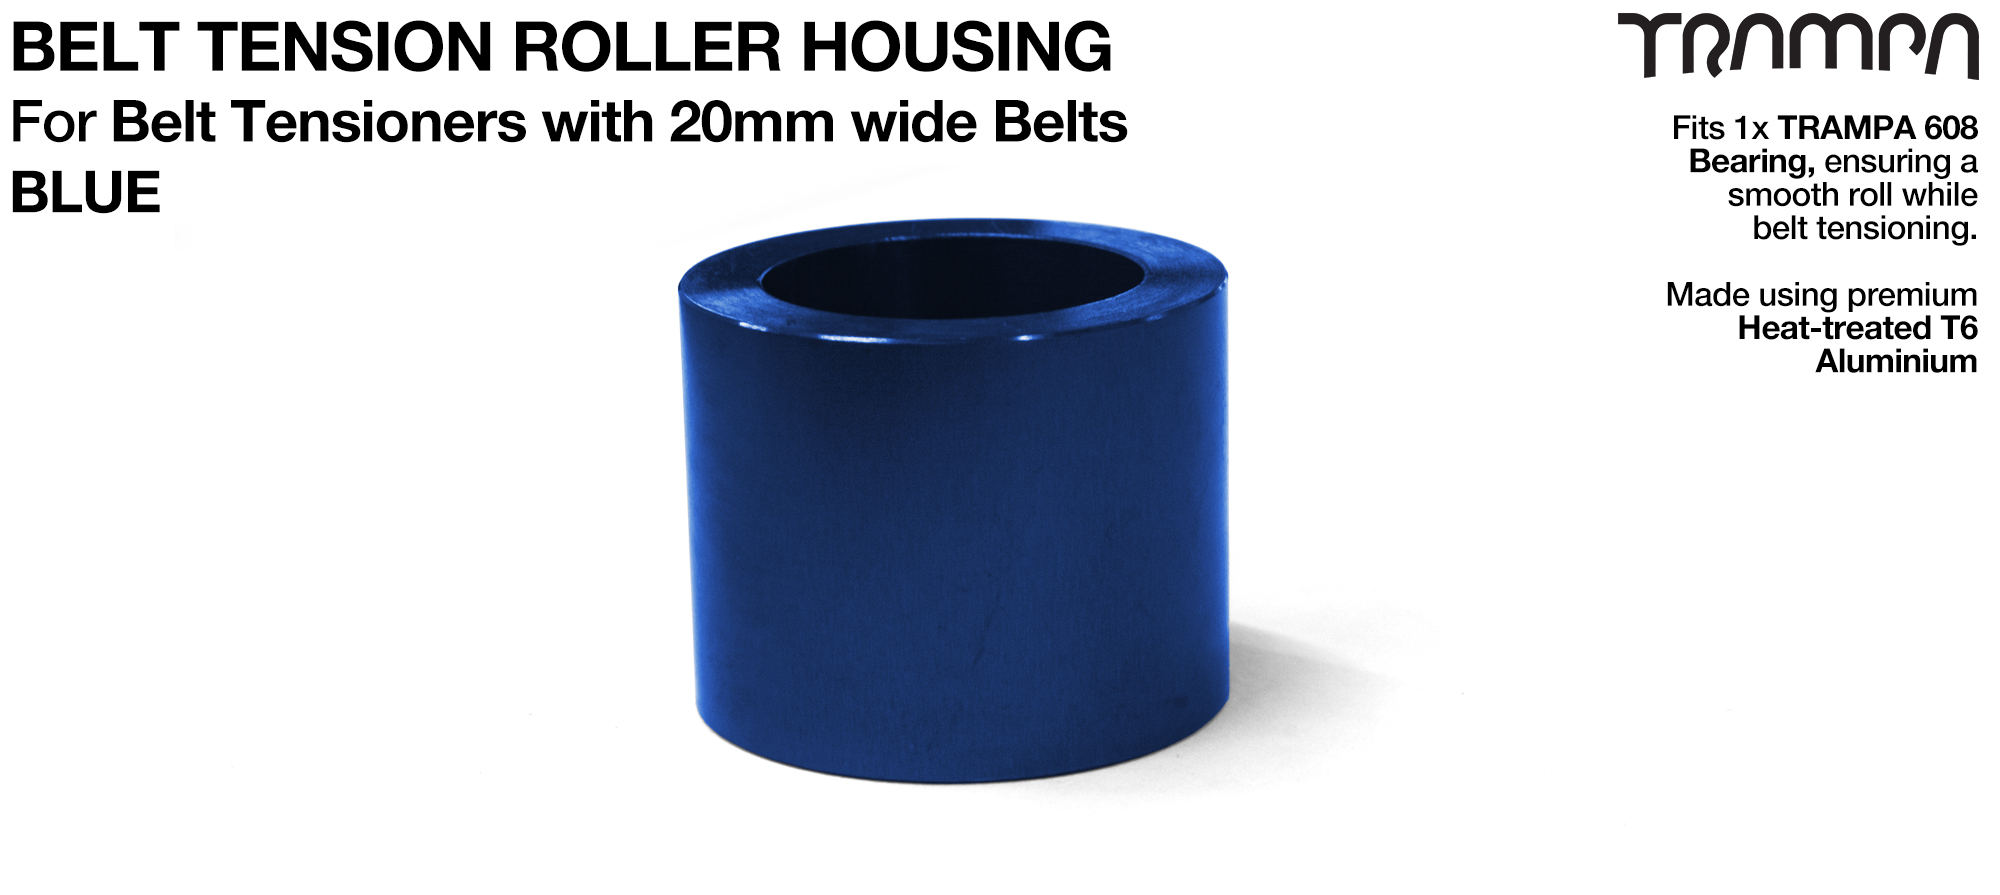 Belt Tension Roller Housing for 20mm Belts - BLUE